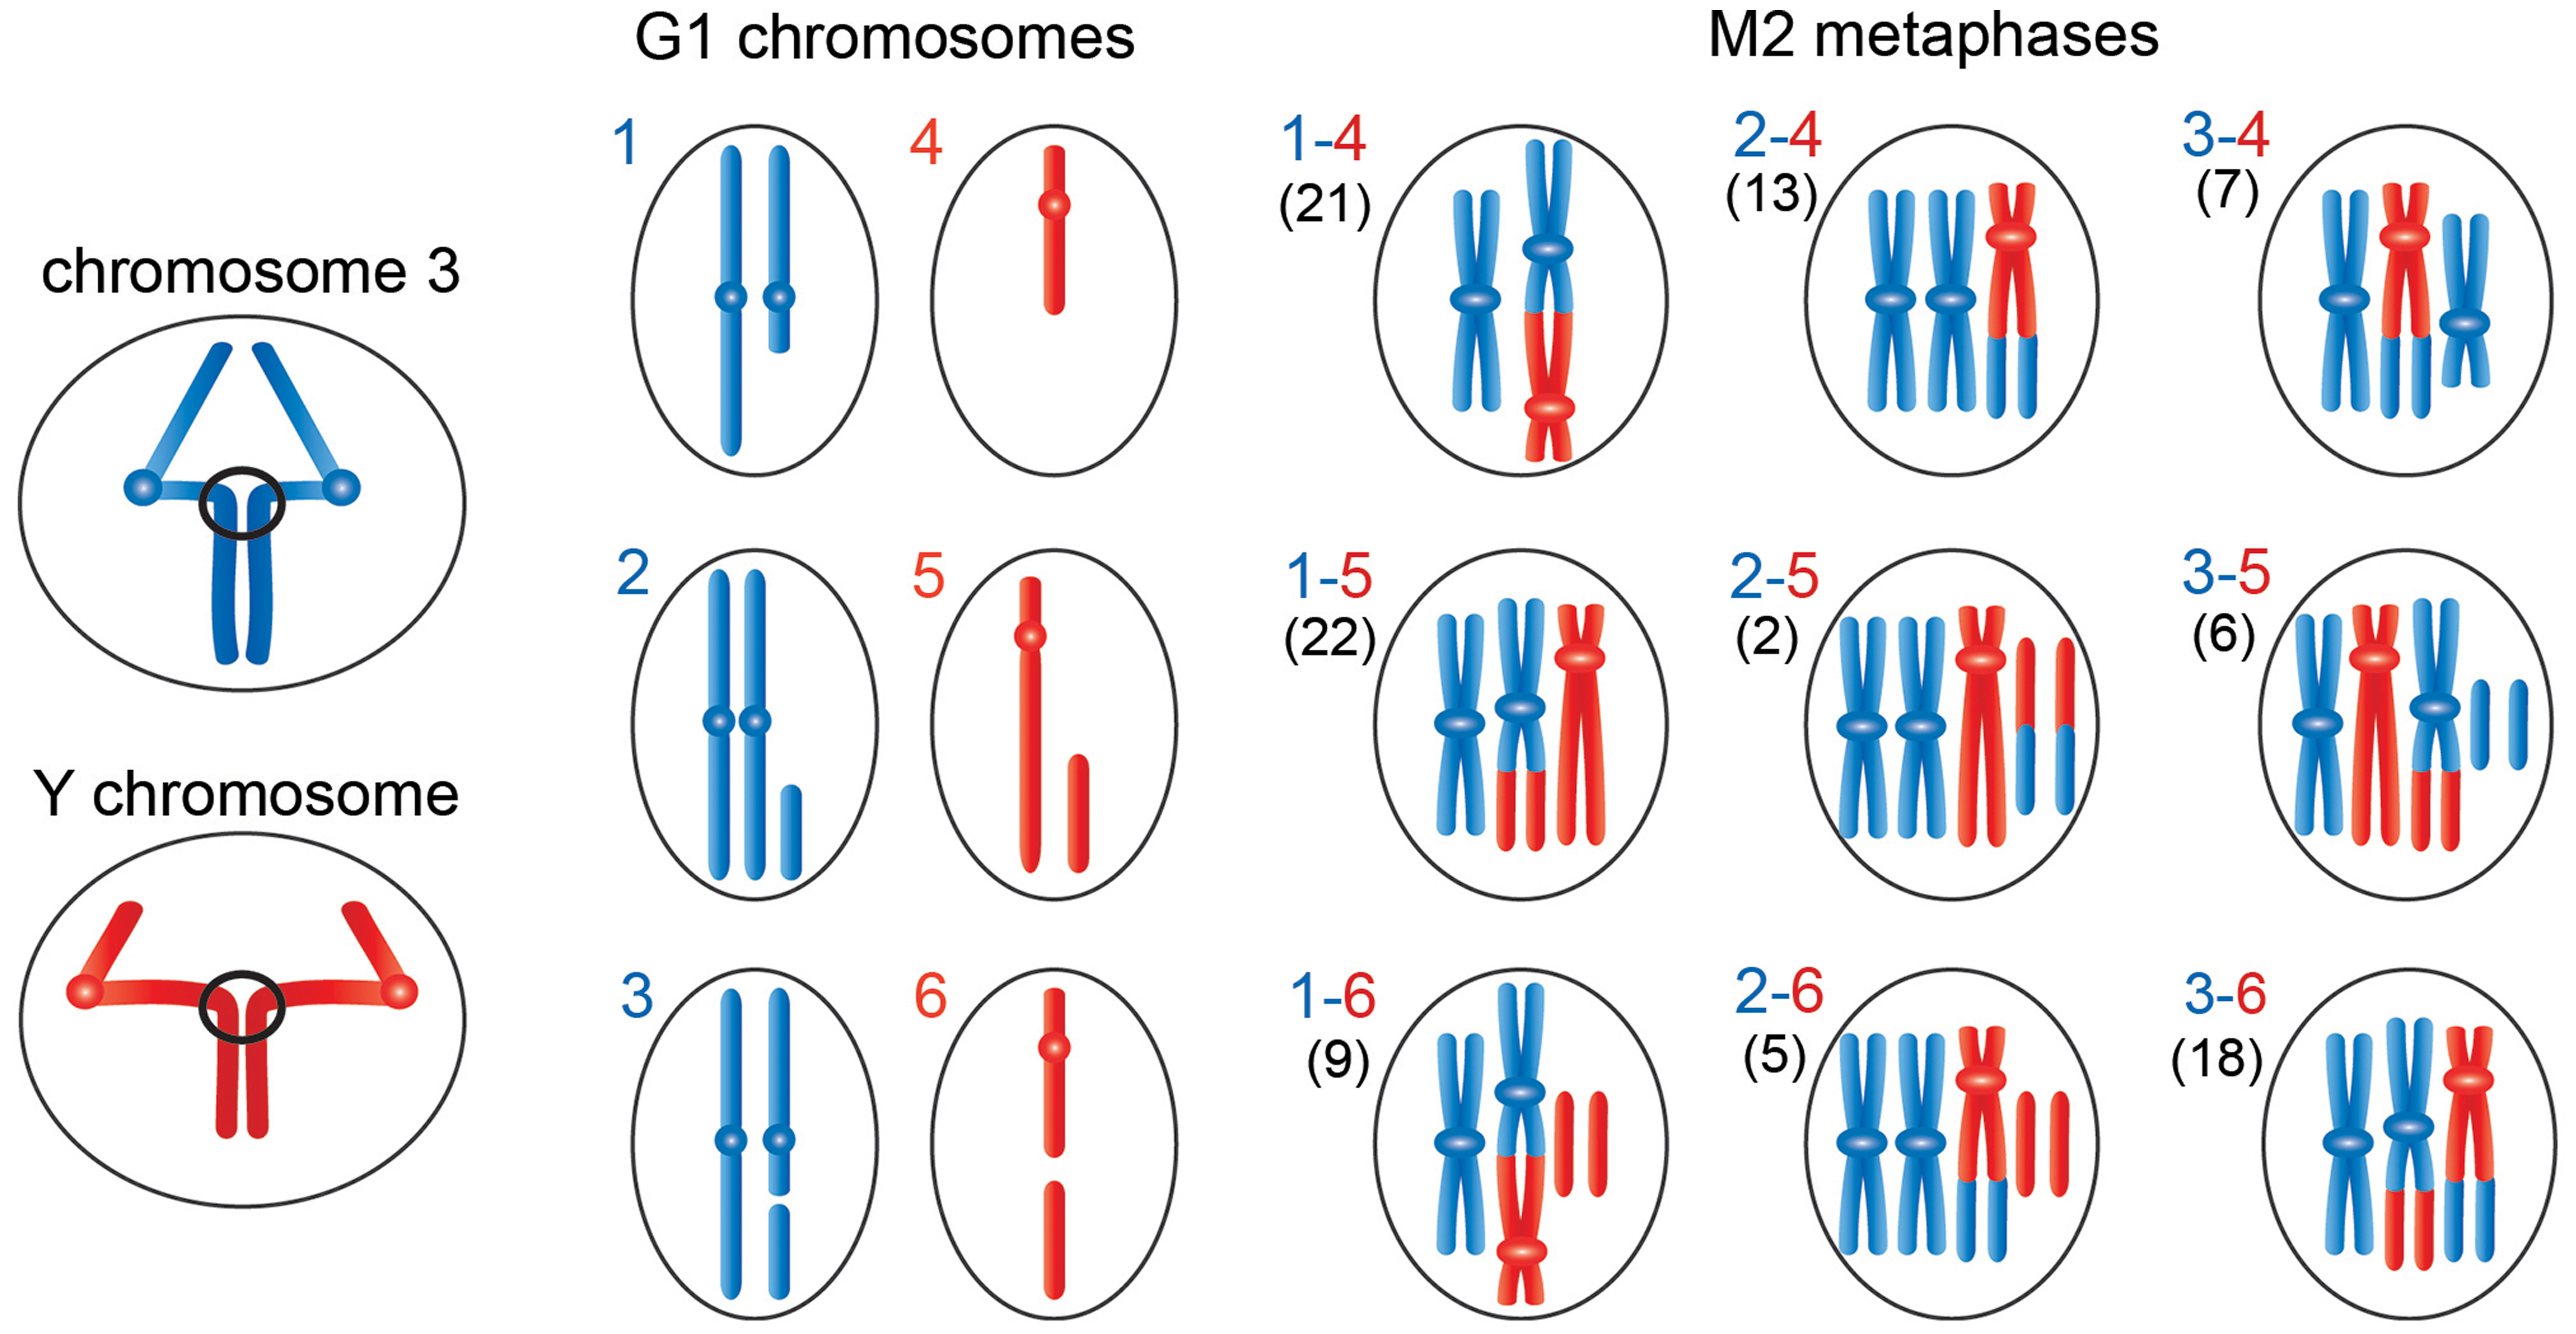 Schematic representation of the events leading to the chromosome rearrangements shown in <em class=&quot;ref&quot;>Figure 3</em>.